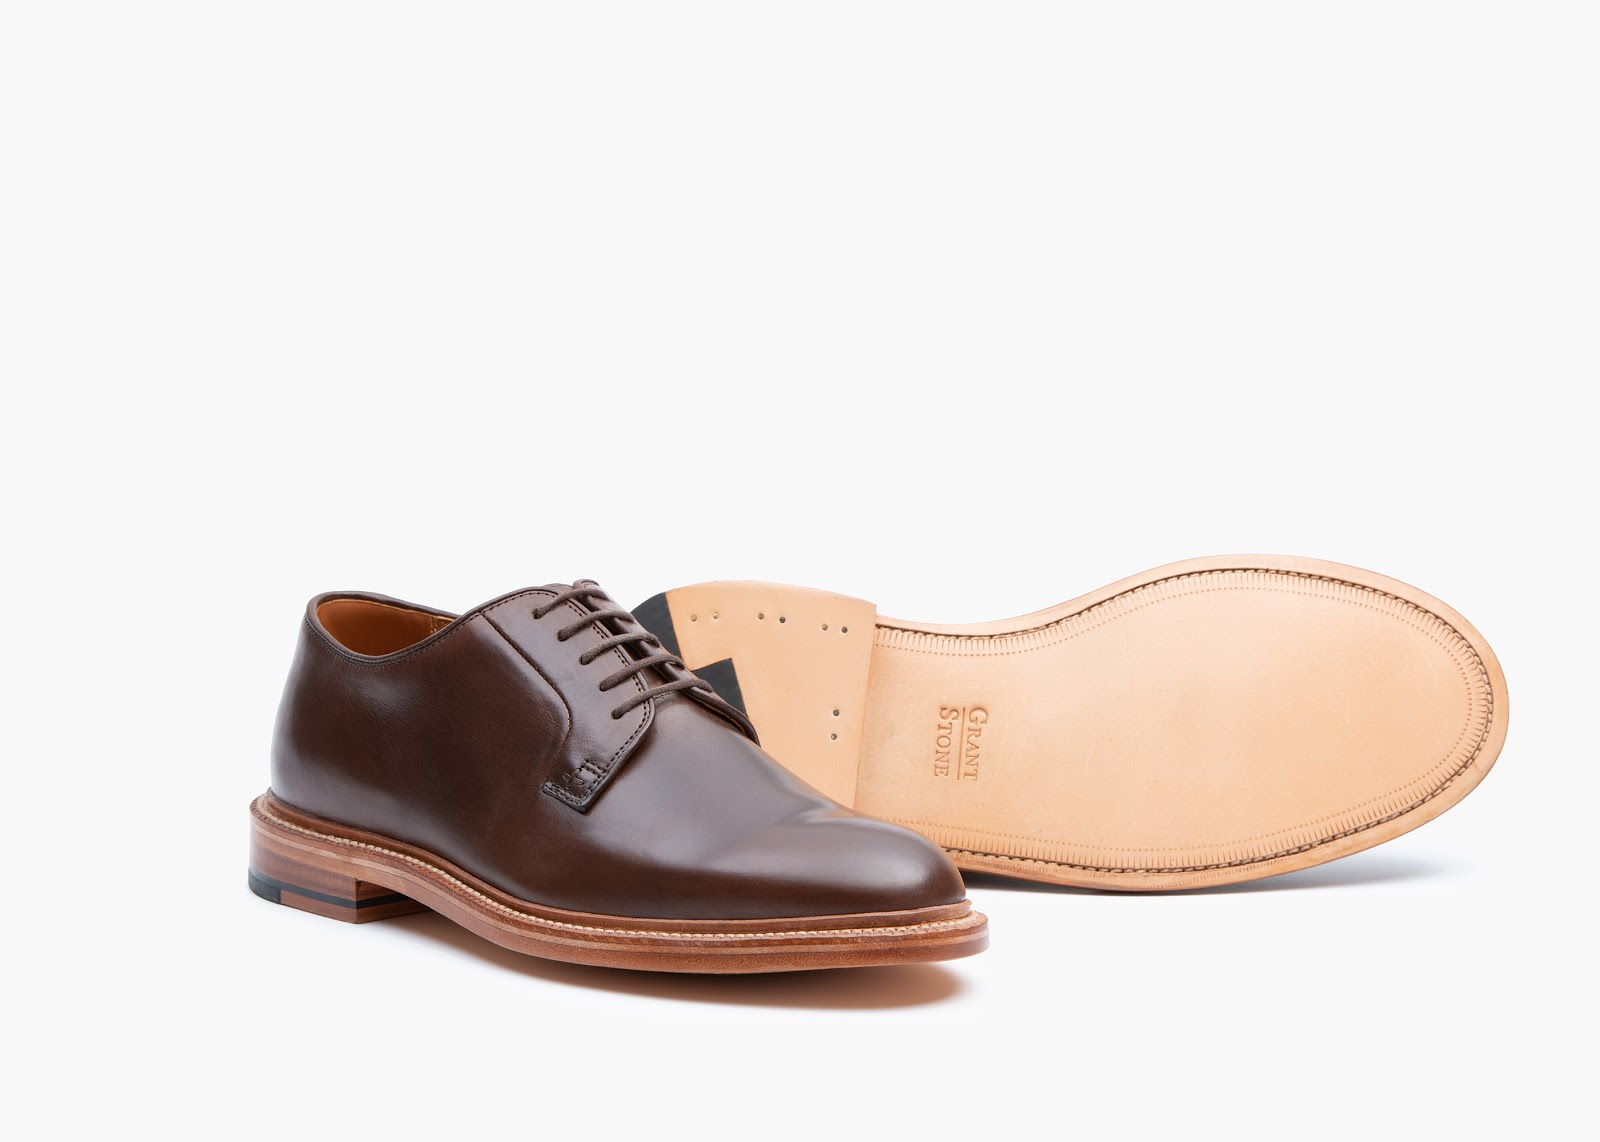 on-starting-a-business-casual-leather-shoes-brand-with-100-sales-growth-yoy